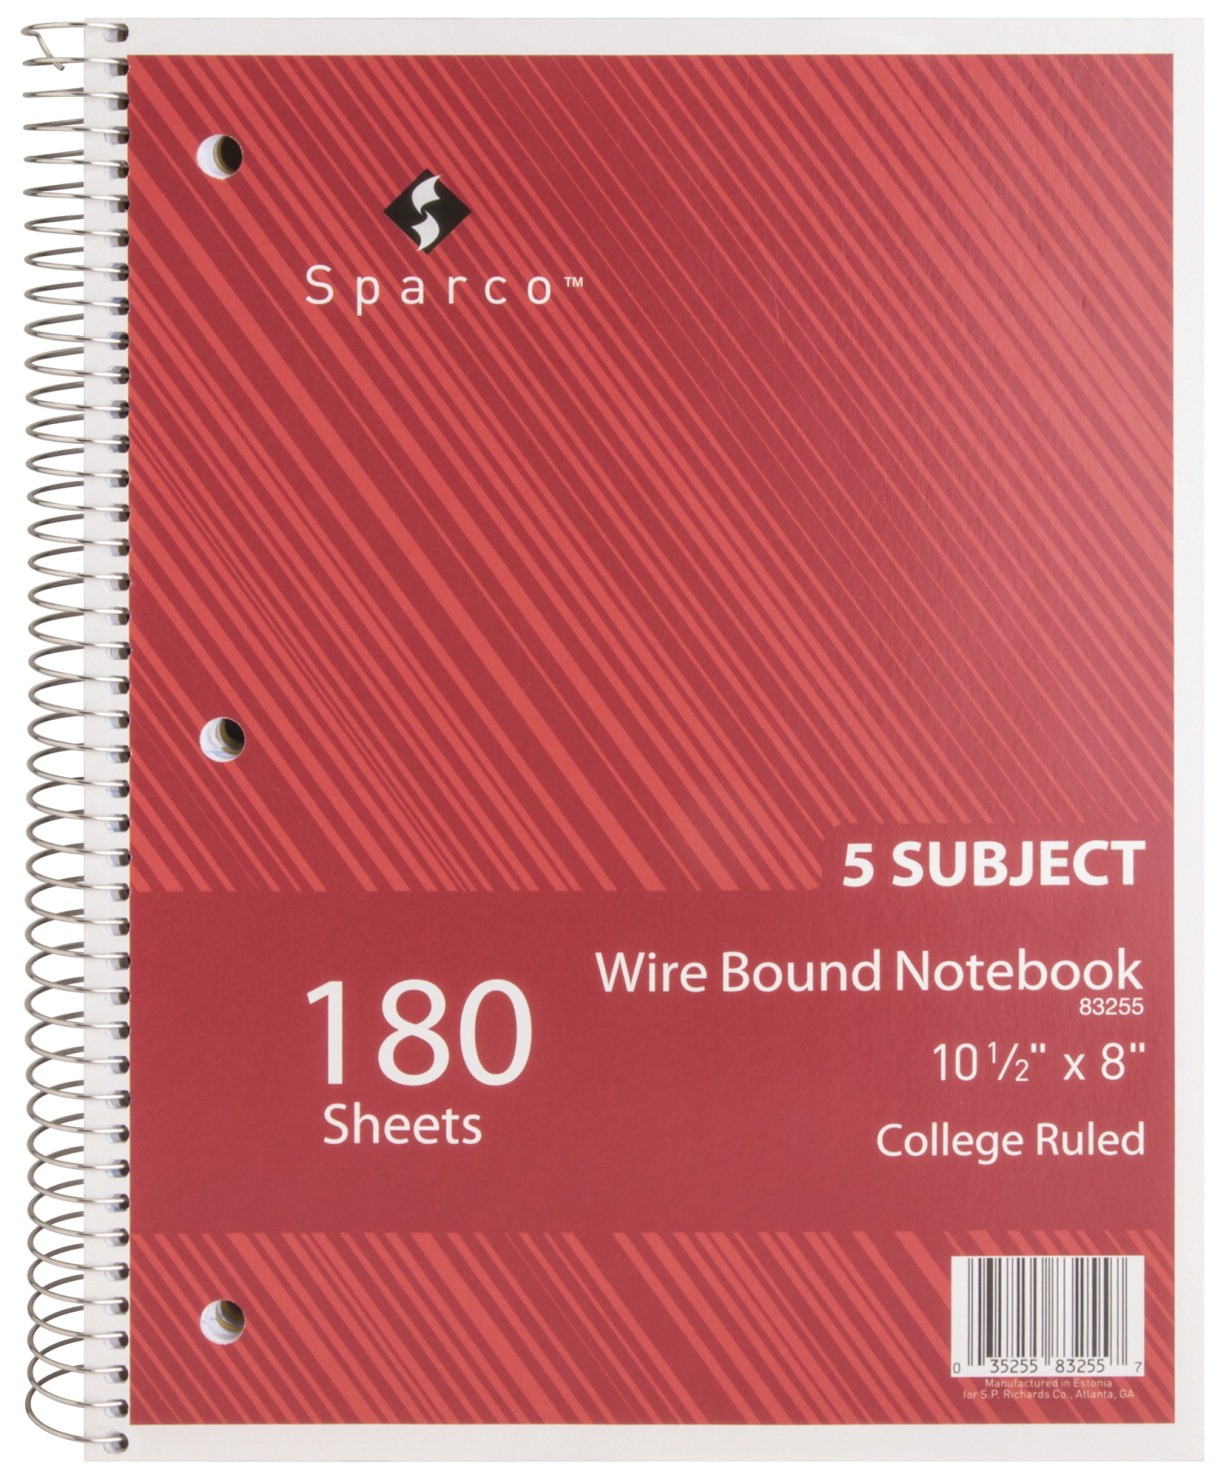 Sparco Wirebound 5-Subject College Ruled Notebook, 10-1/2 x 8 Inches, 180  Sheets